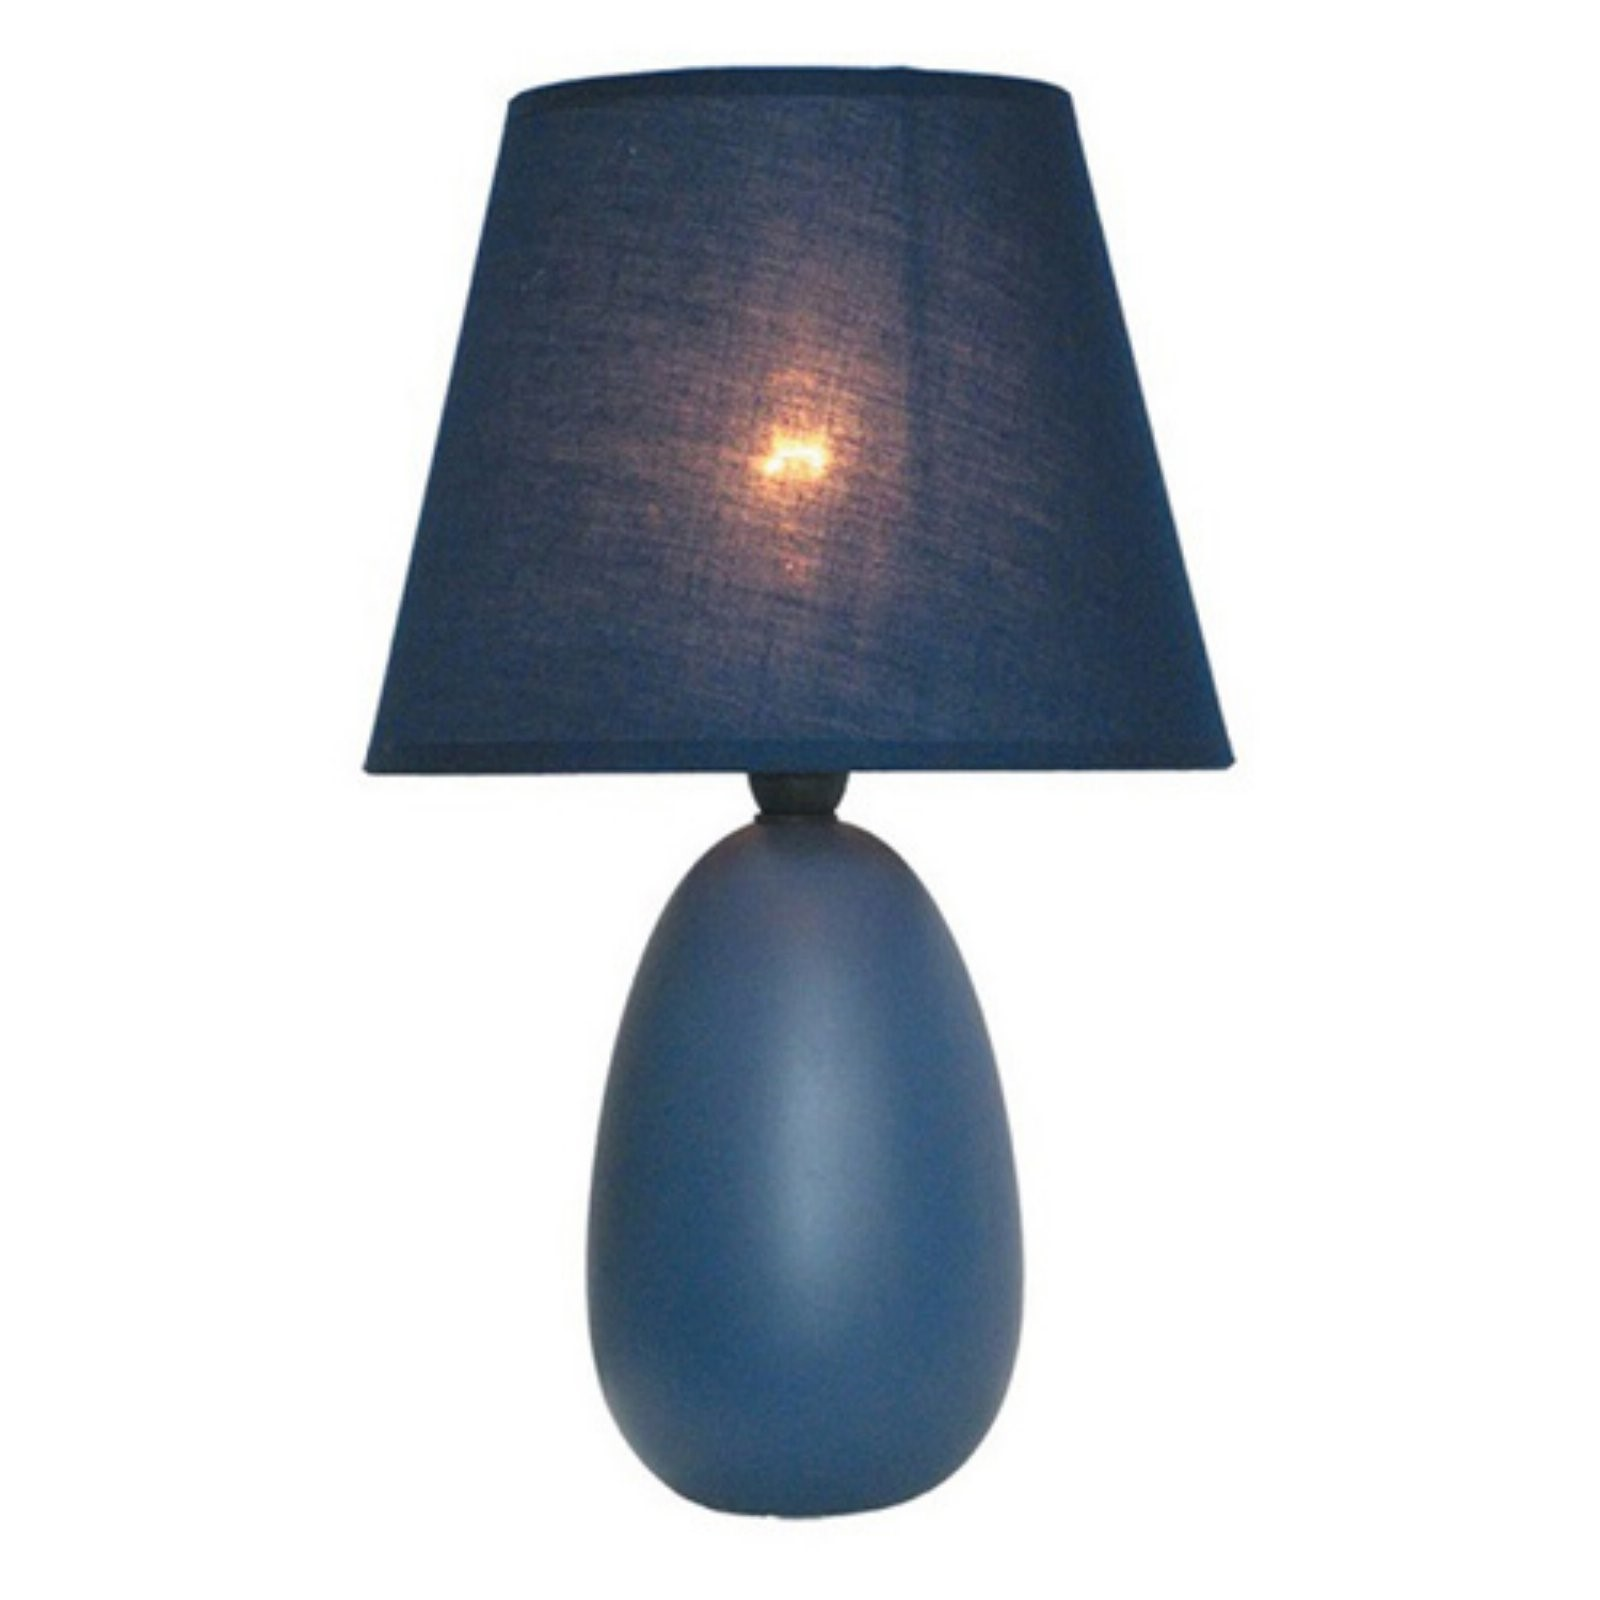 Simple Designs Table Lamp   9.5H In.   Blue